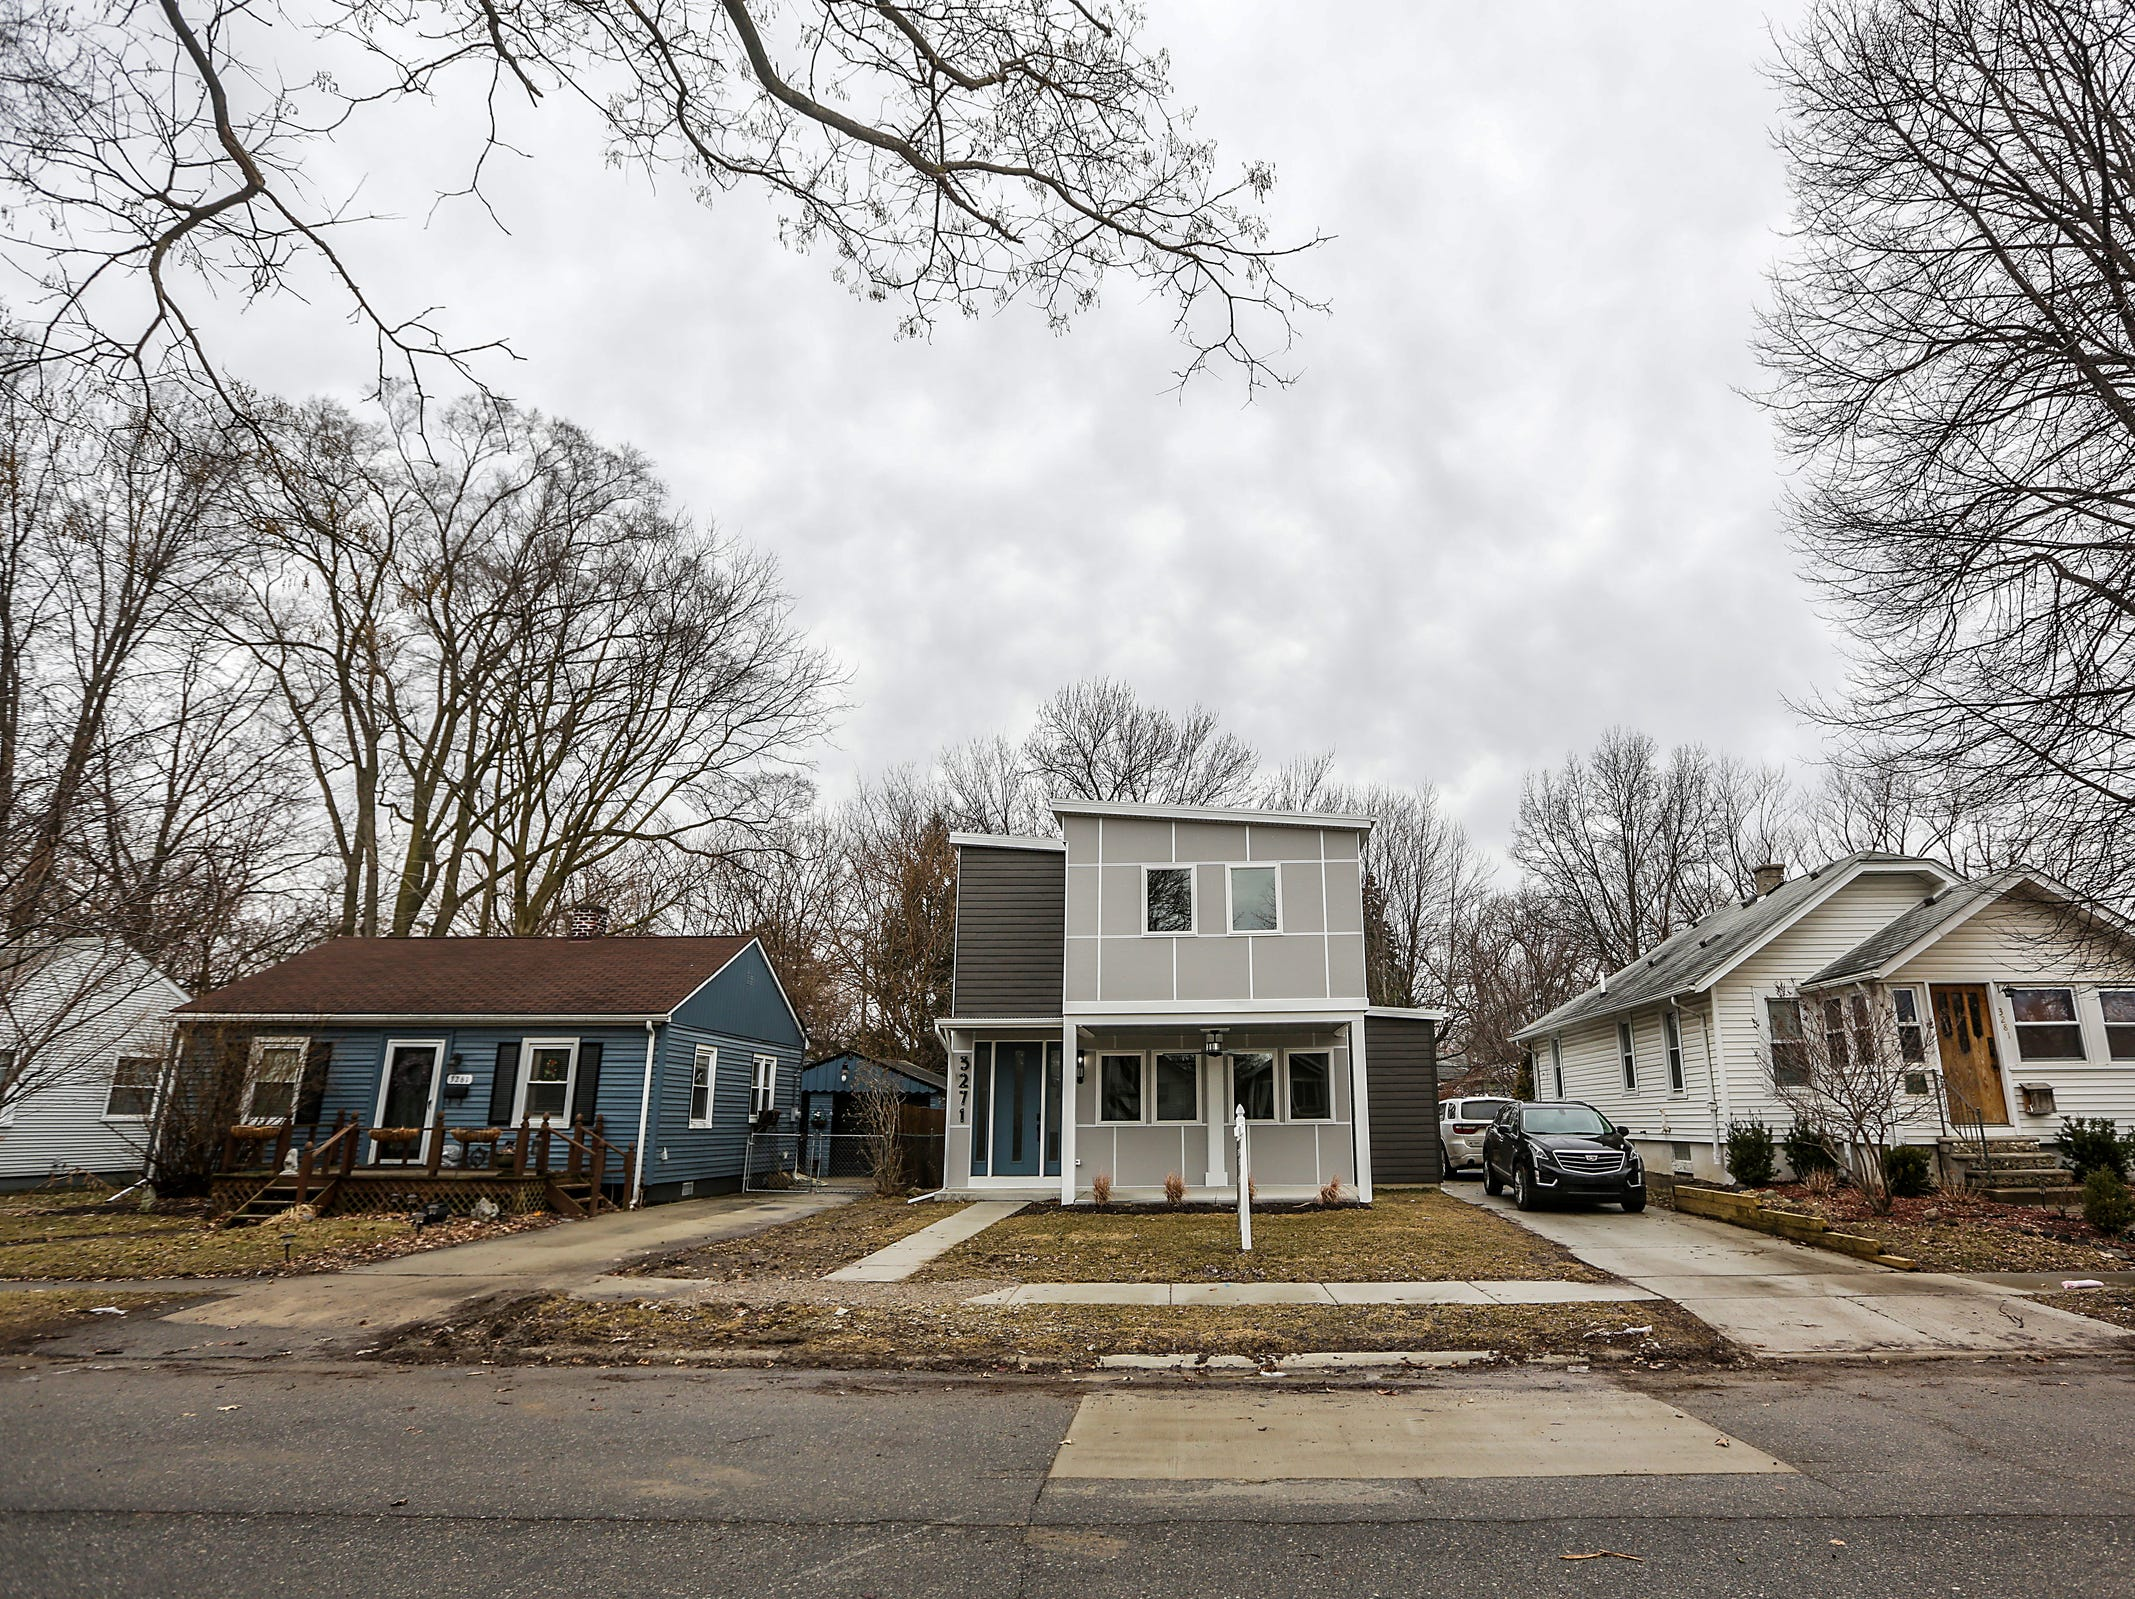 A new construction made from 5 and half shipping containers is for sale for $450,000 in Ferndale, Mich. photographed on Thursday, March 14, 2019. The home was built on an empty lot.